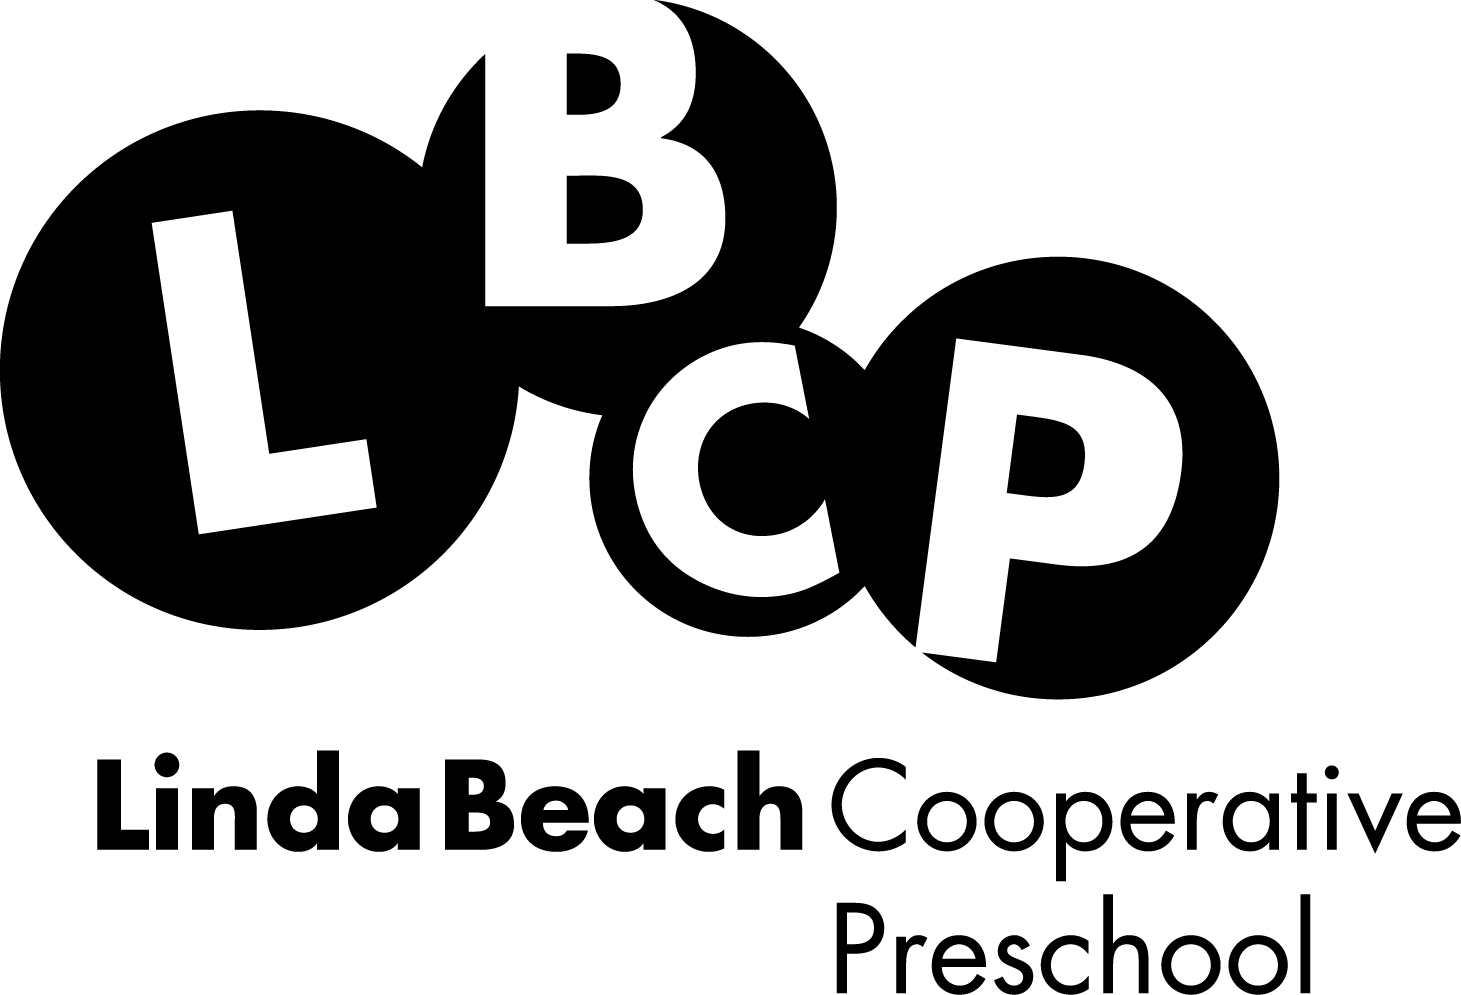 Linda Beach Cooperative Preschool